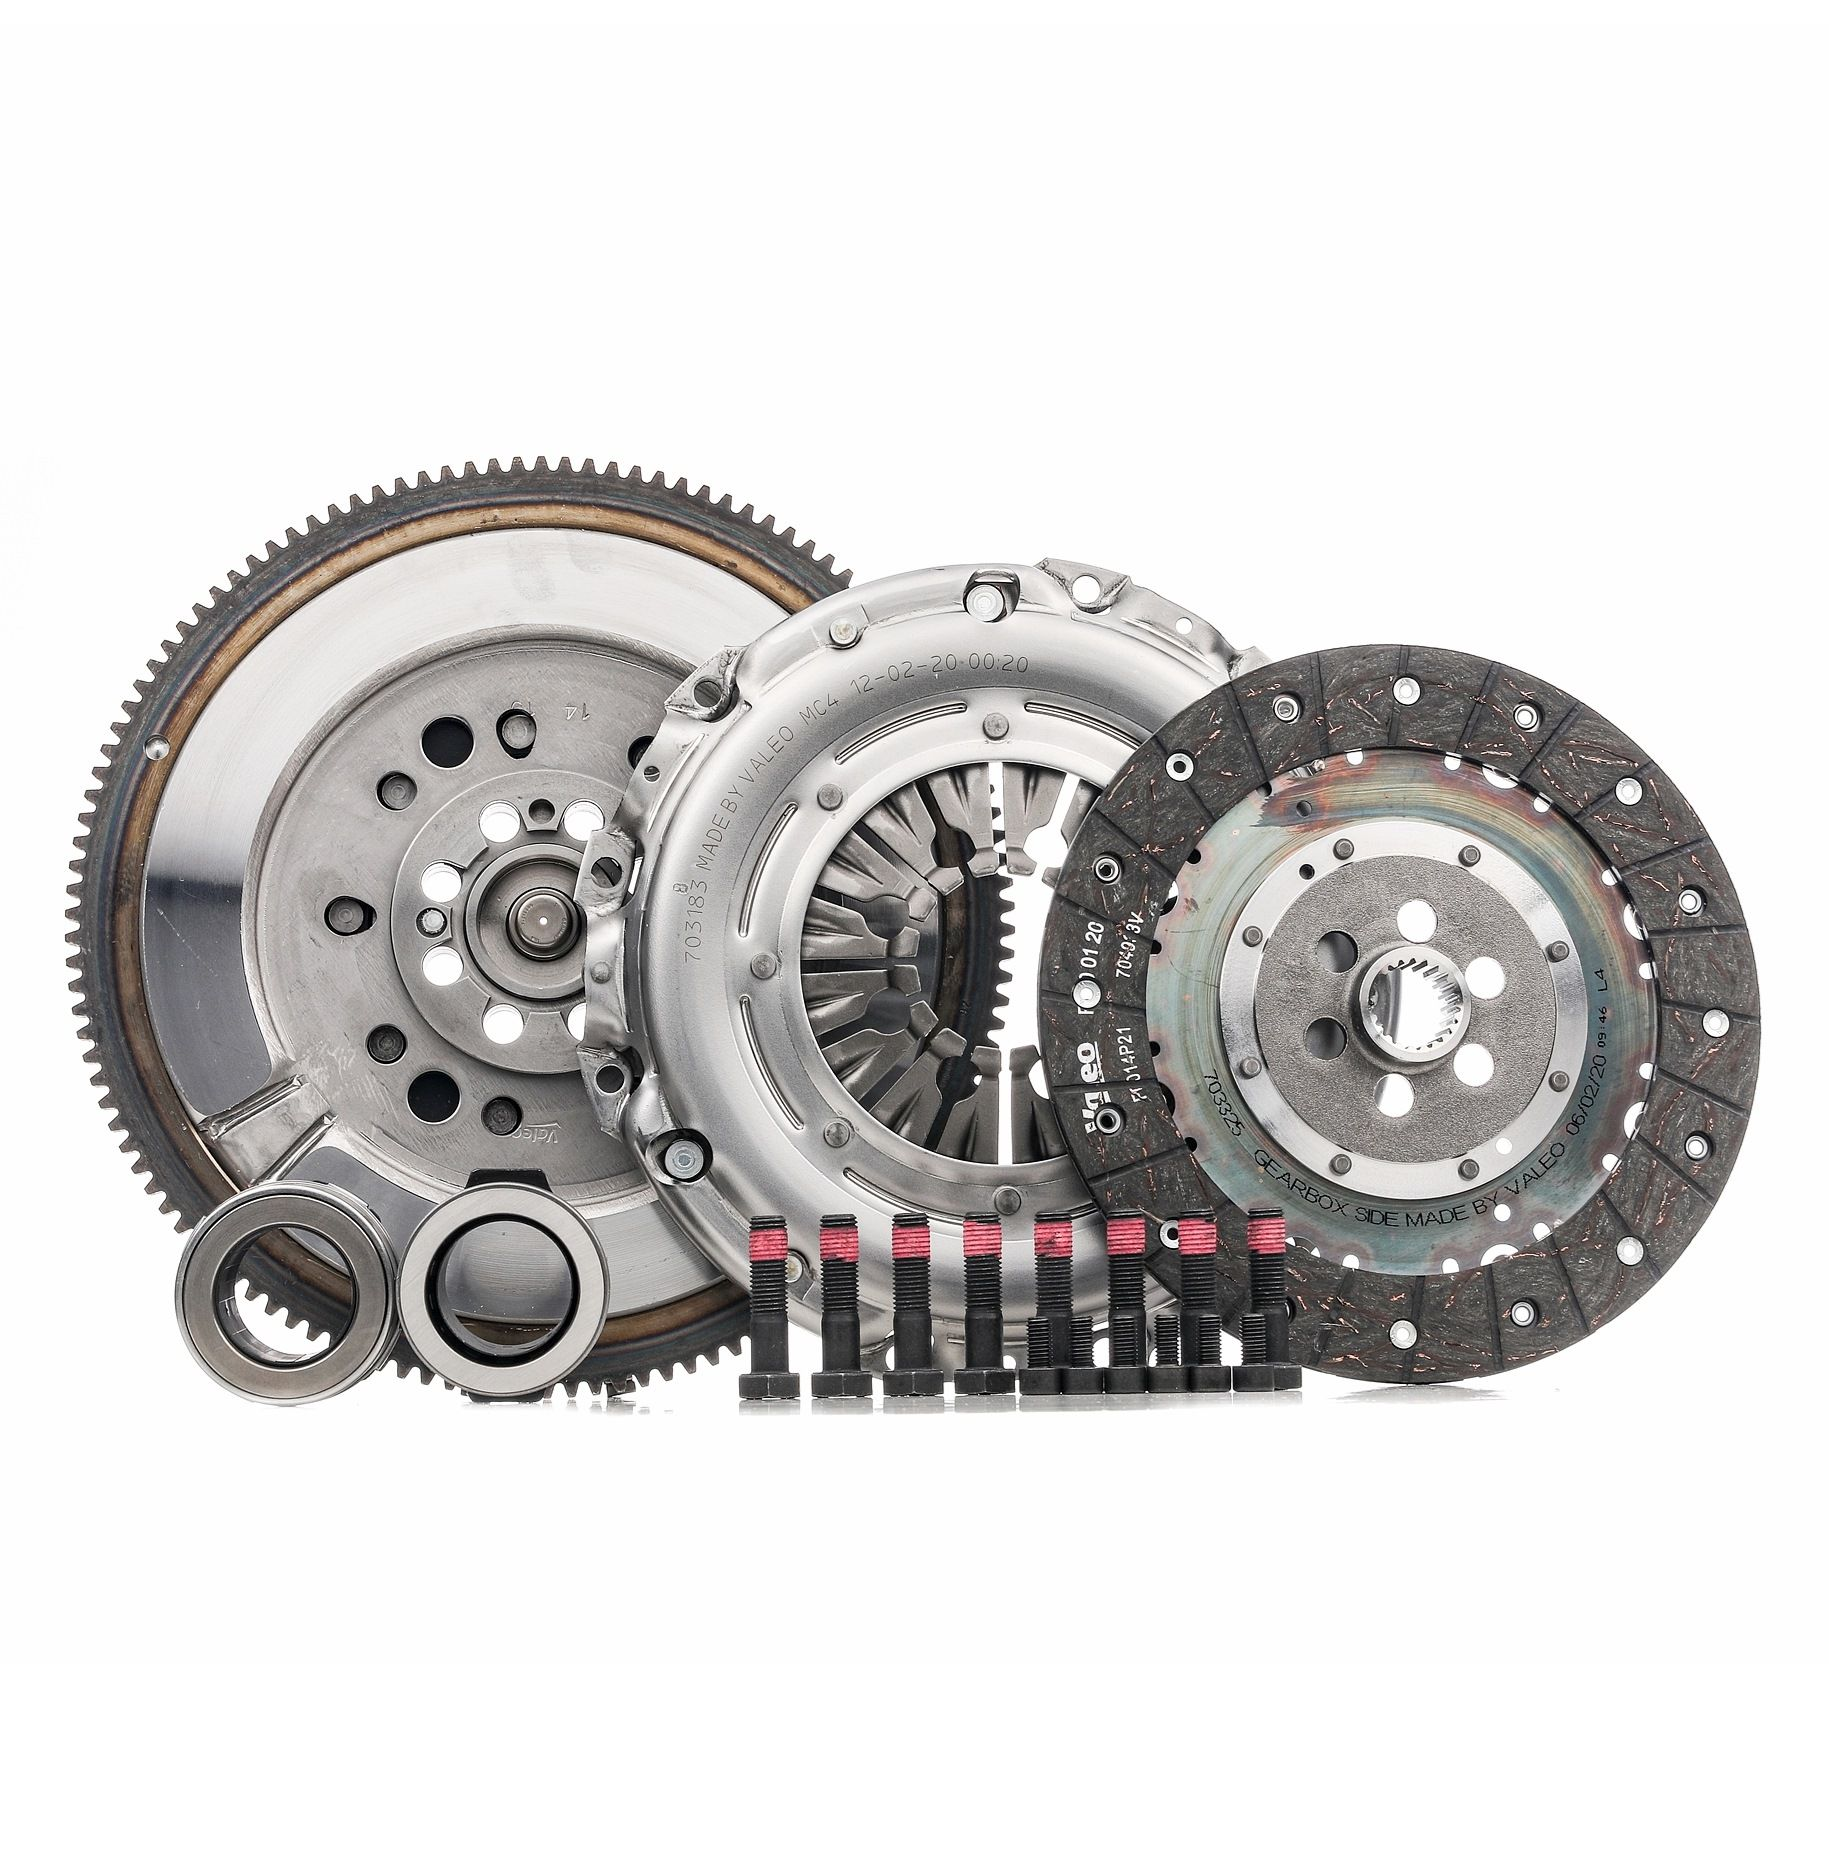 BMW 5 Series 2015 Clutch set VALEO 837093: for engines with dual-mass flywheel, with clutch pressure plate, with clutch plate, with clutch release bearing, with flywheel, with lock screw set, with screw set